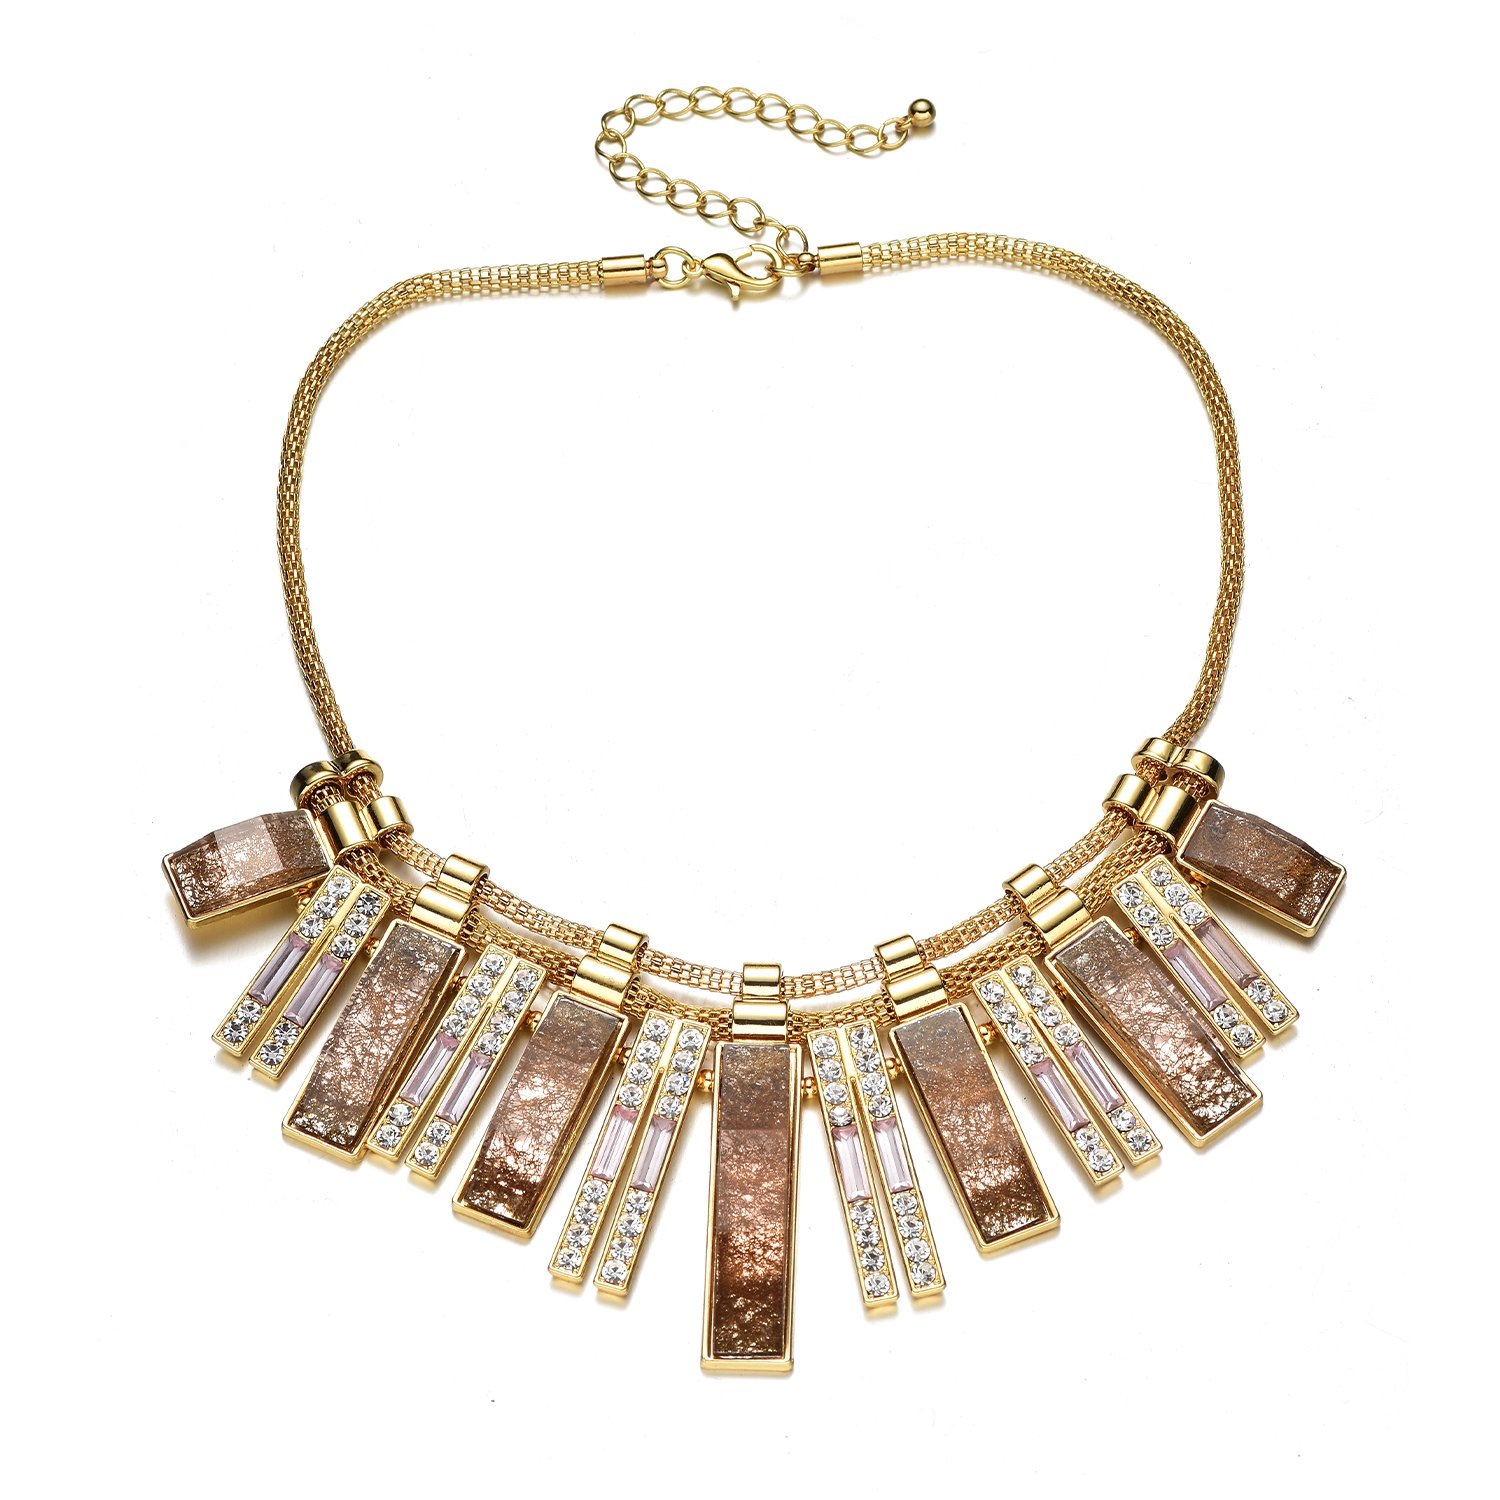 Fsmiling Vintage Gold Tone Collar Chain Geometric Stone Sparkly Crystal Statement Necklaces for Women (Brown Chunky Necklace)